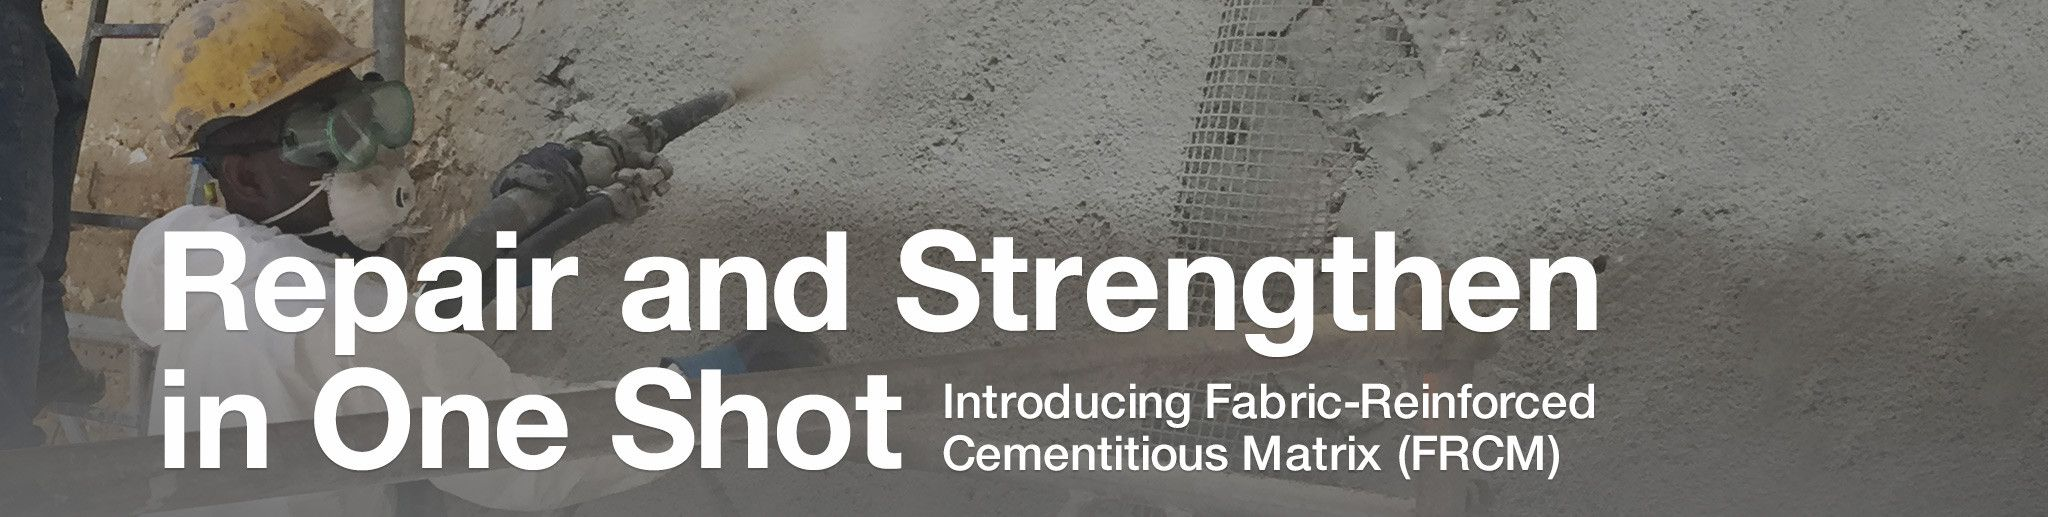 Repair and Strengthen: Introducing Fabric-Reinforced Cementitious Matrix (FRCM)